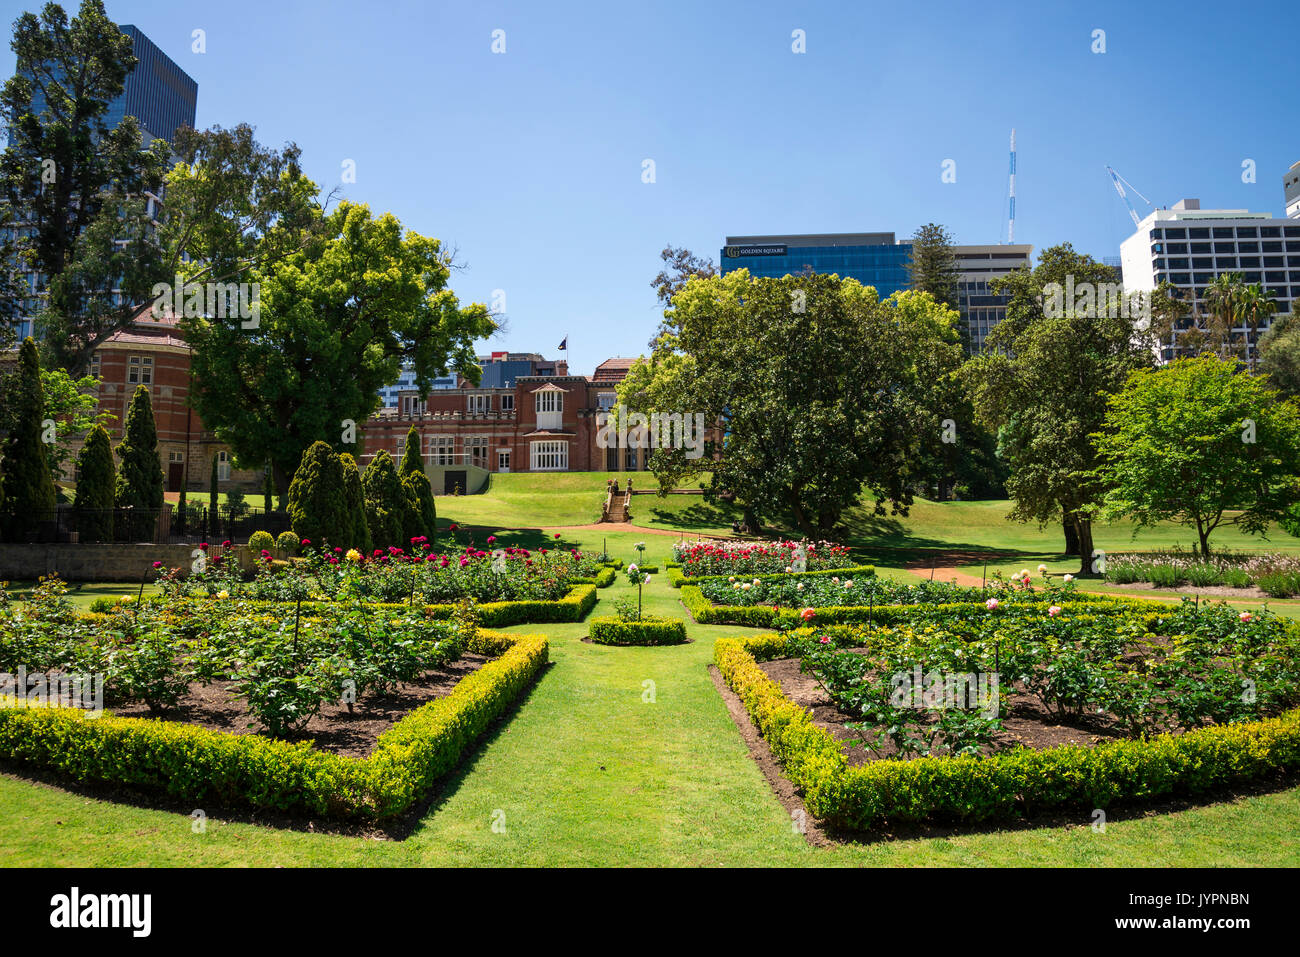 Flower Beds In Landscaped Gardens At Government House In Perth City,  Western Australia